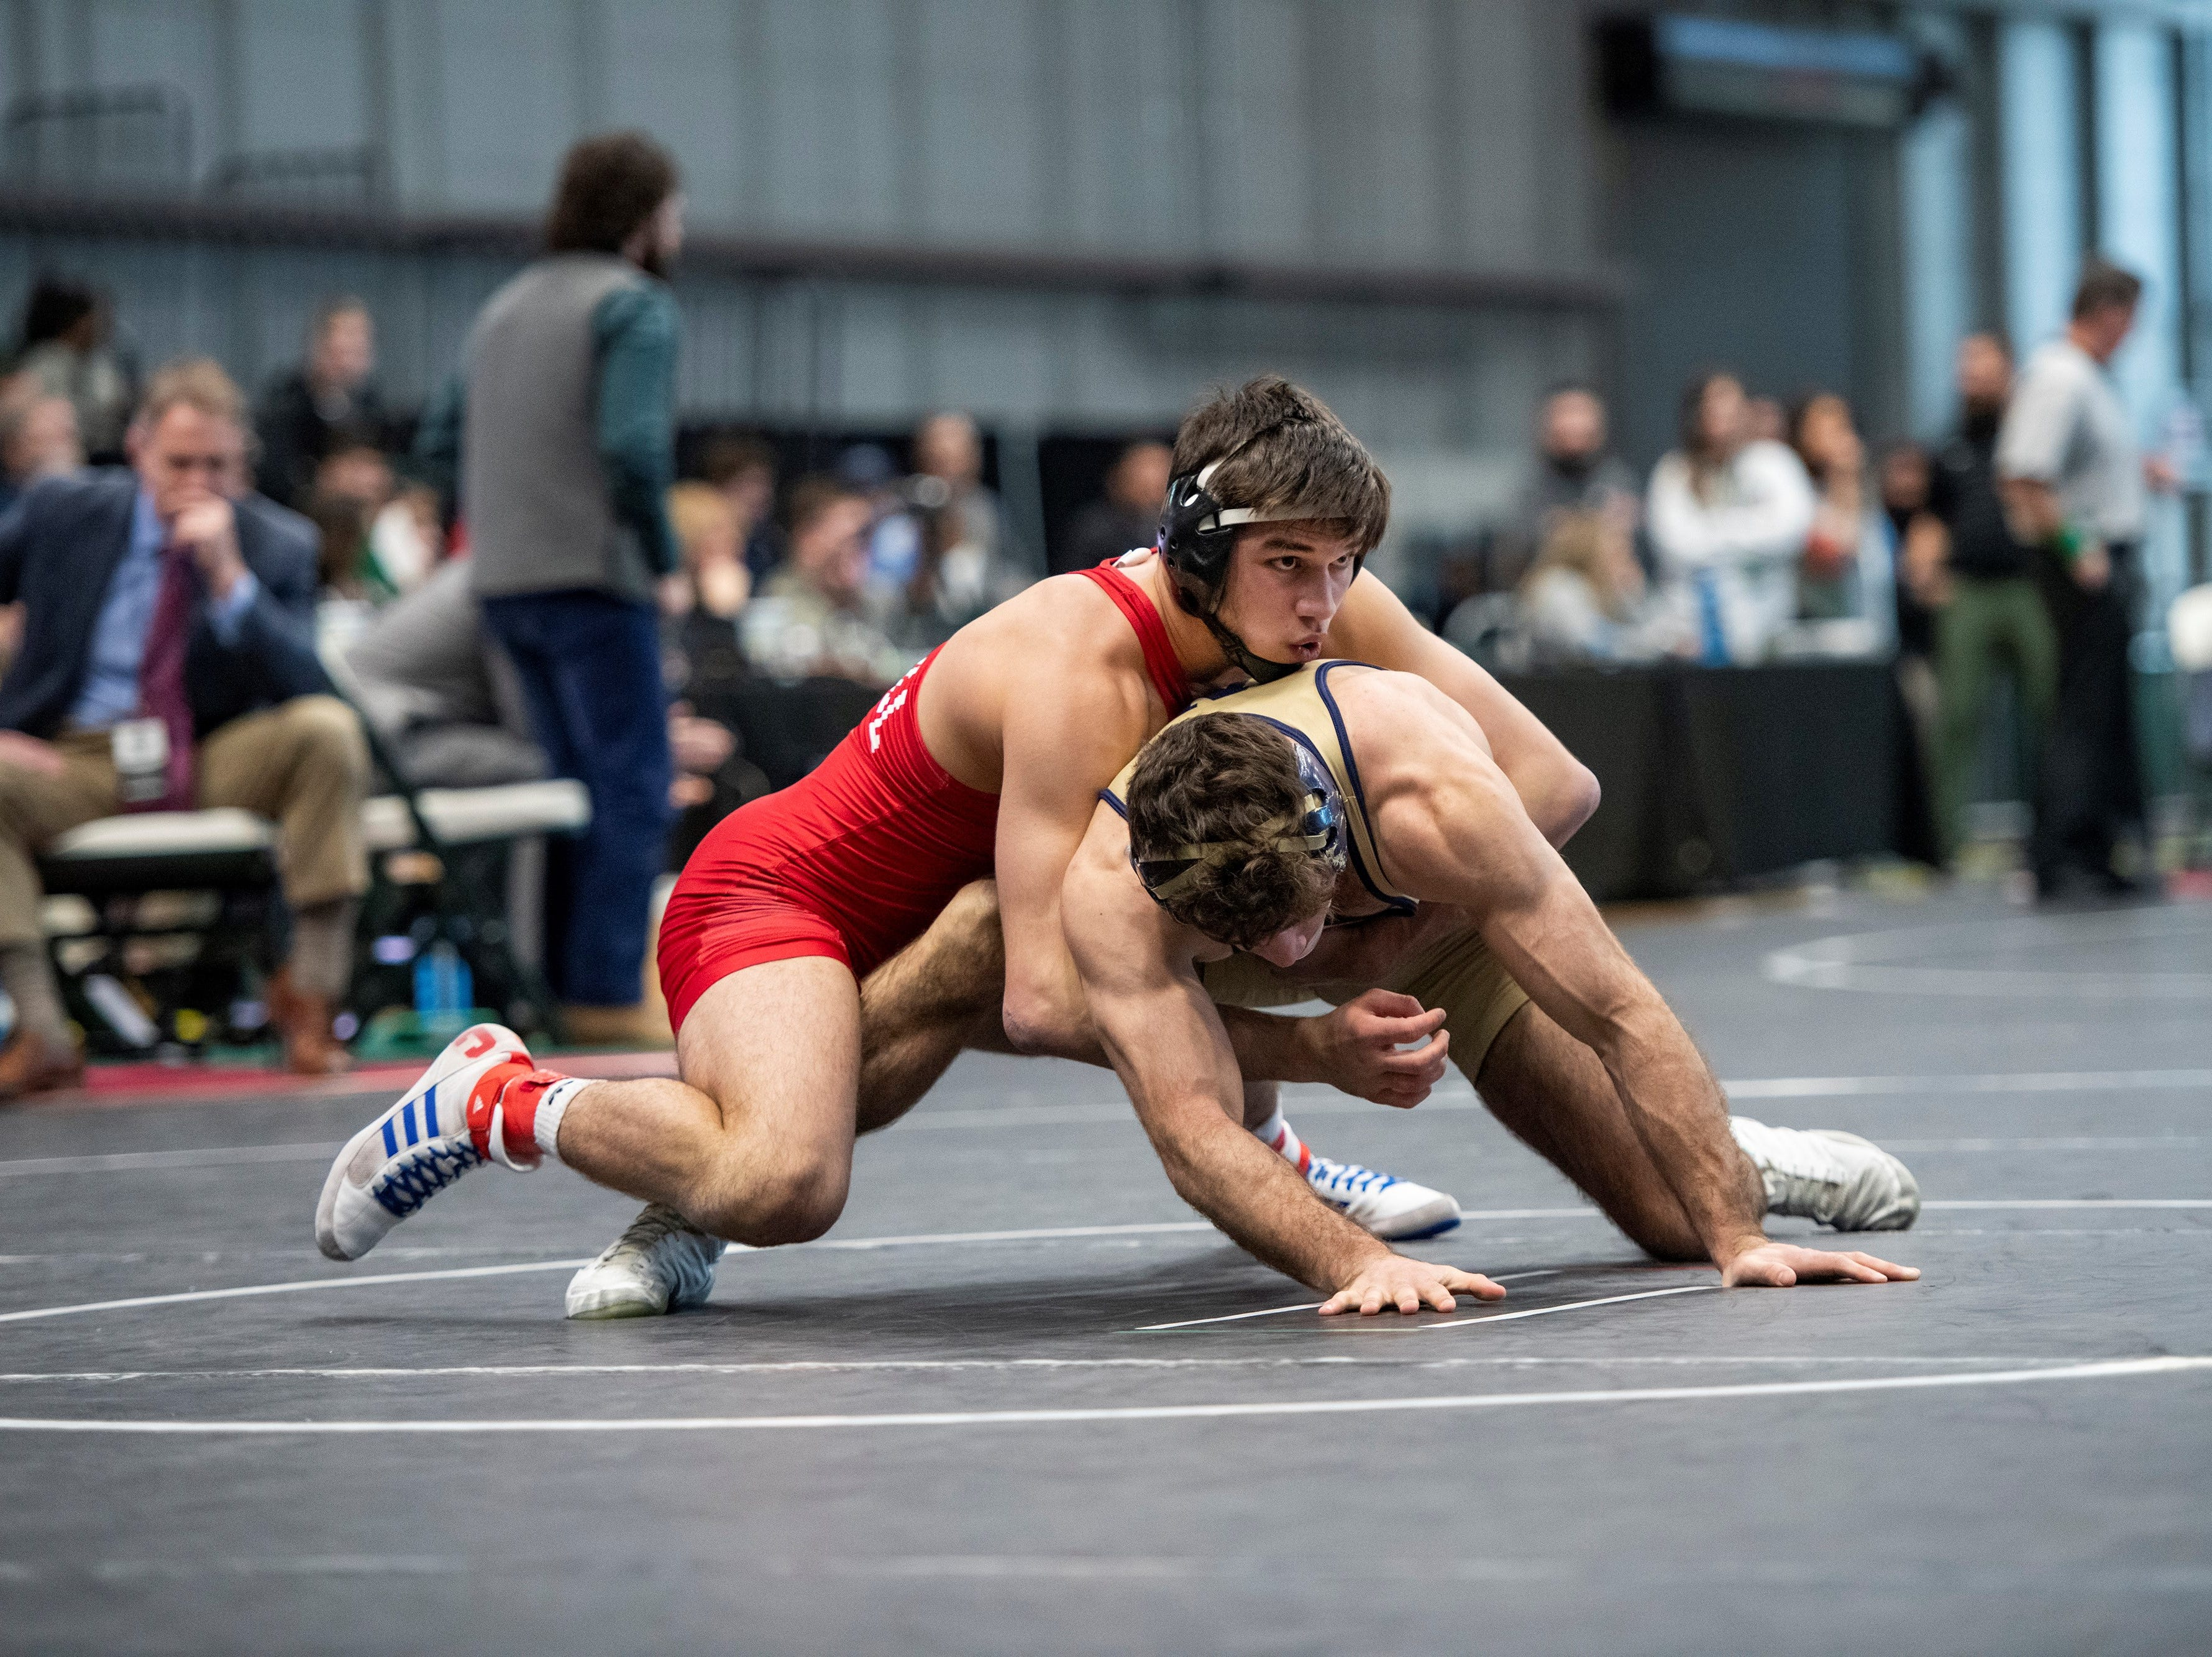 Cornell sophomore Yianni Diakomihalis gets the advantage on his opponent during a match at the Friedman Wrestling Center earlier this season.